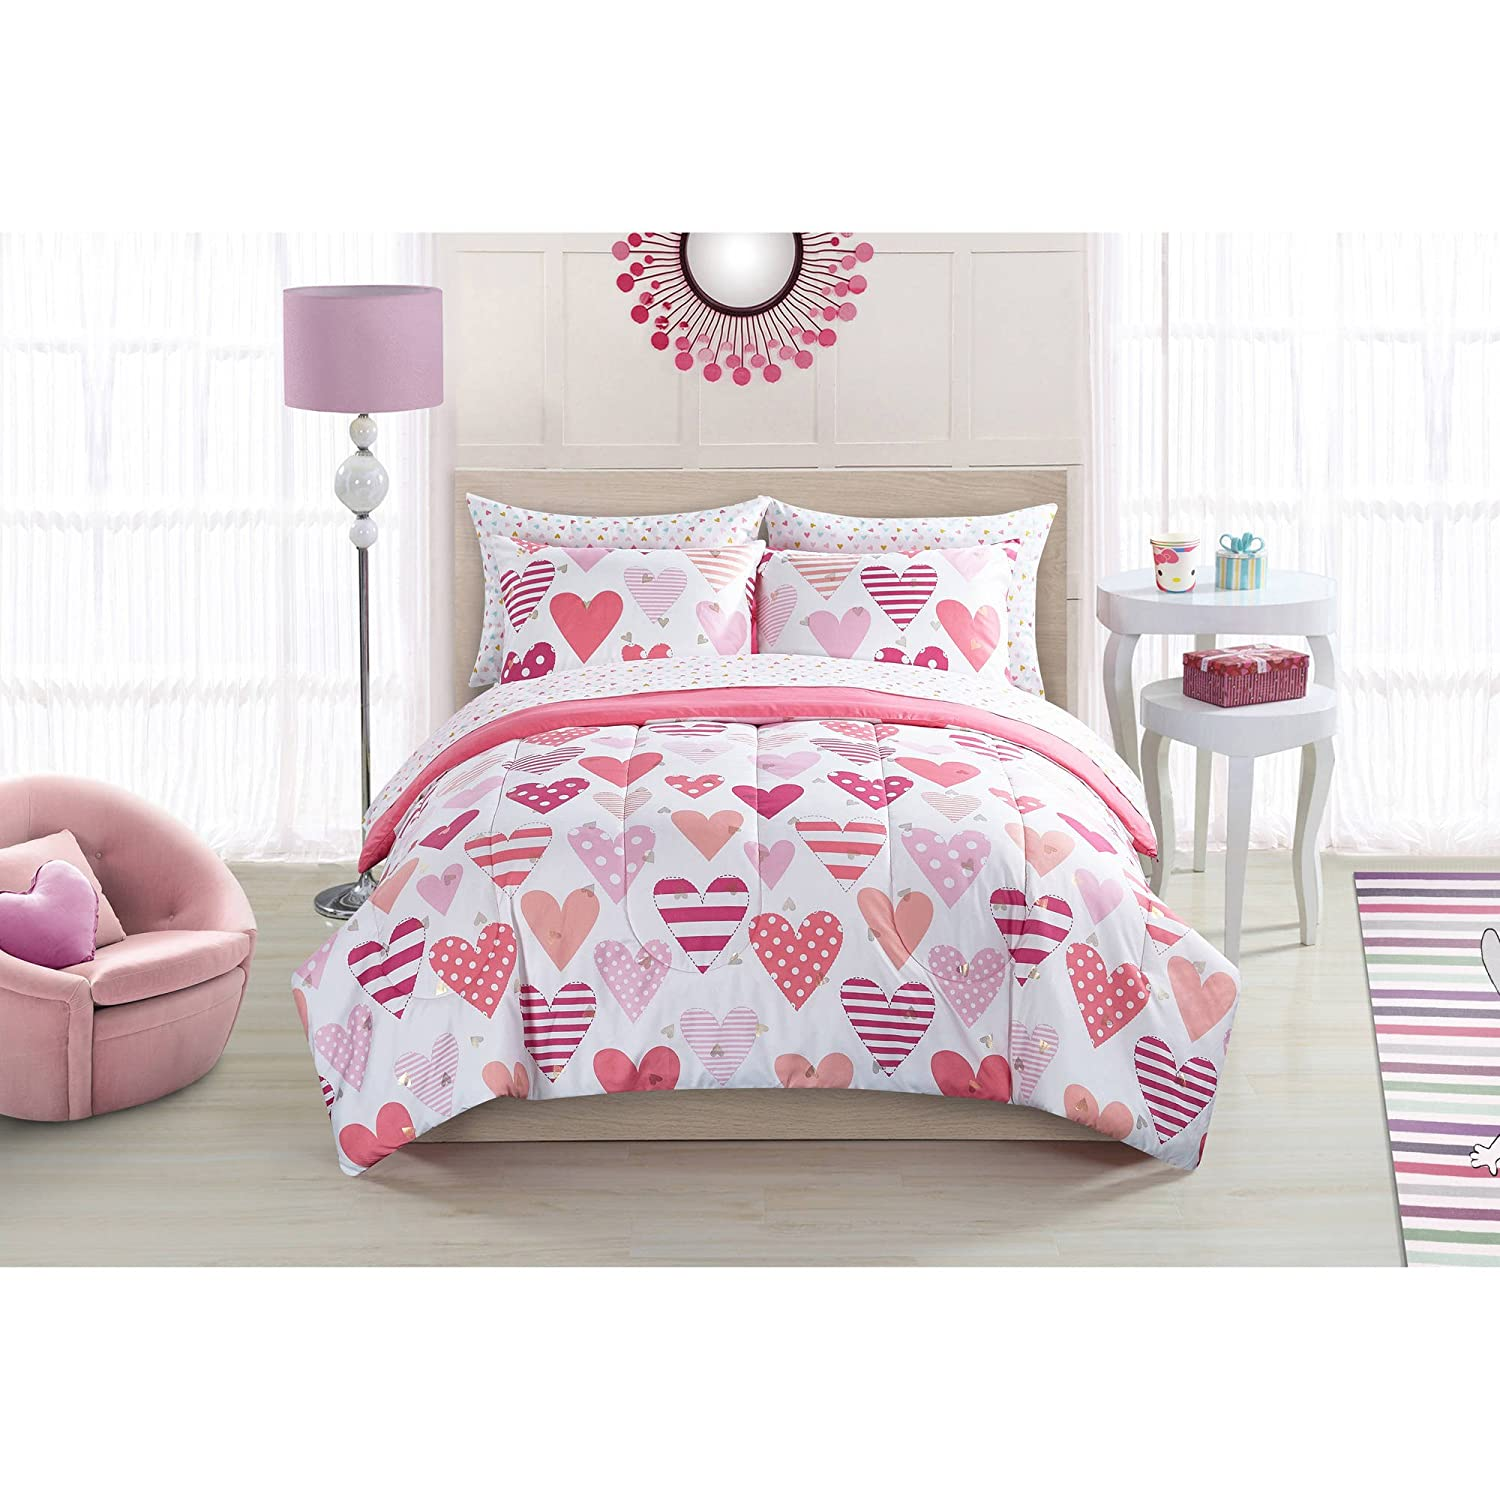 Mainstays Kids Sweet Hearts Bed in a Bag Bedding Set, Full